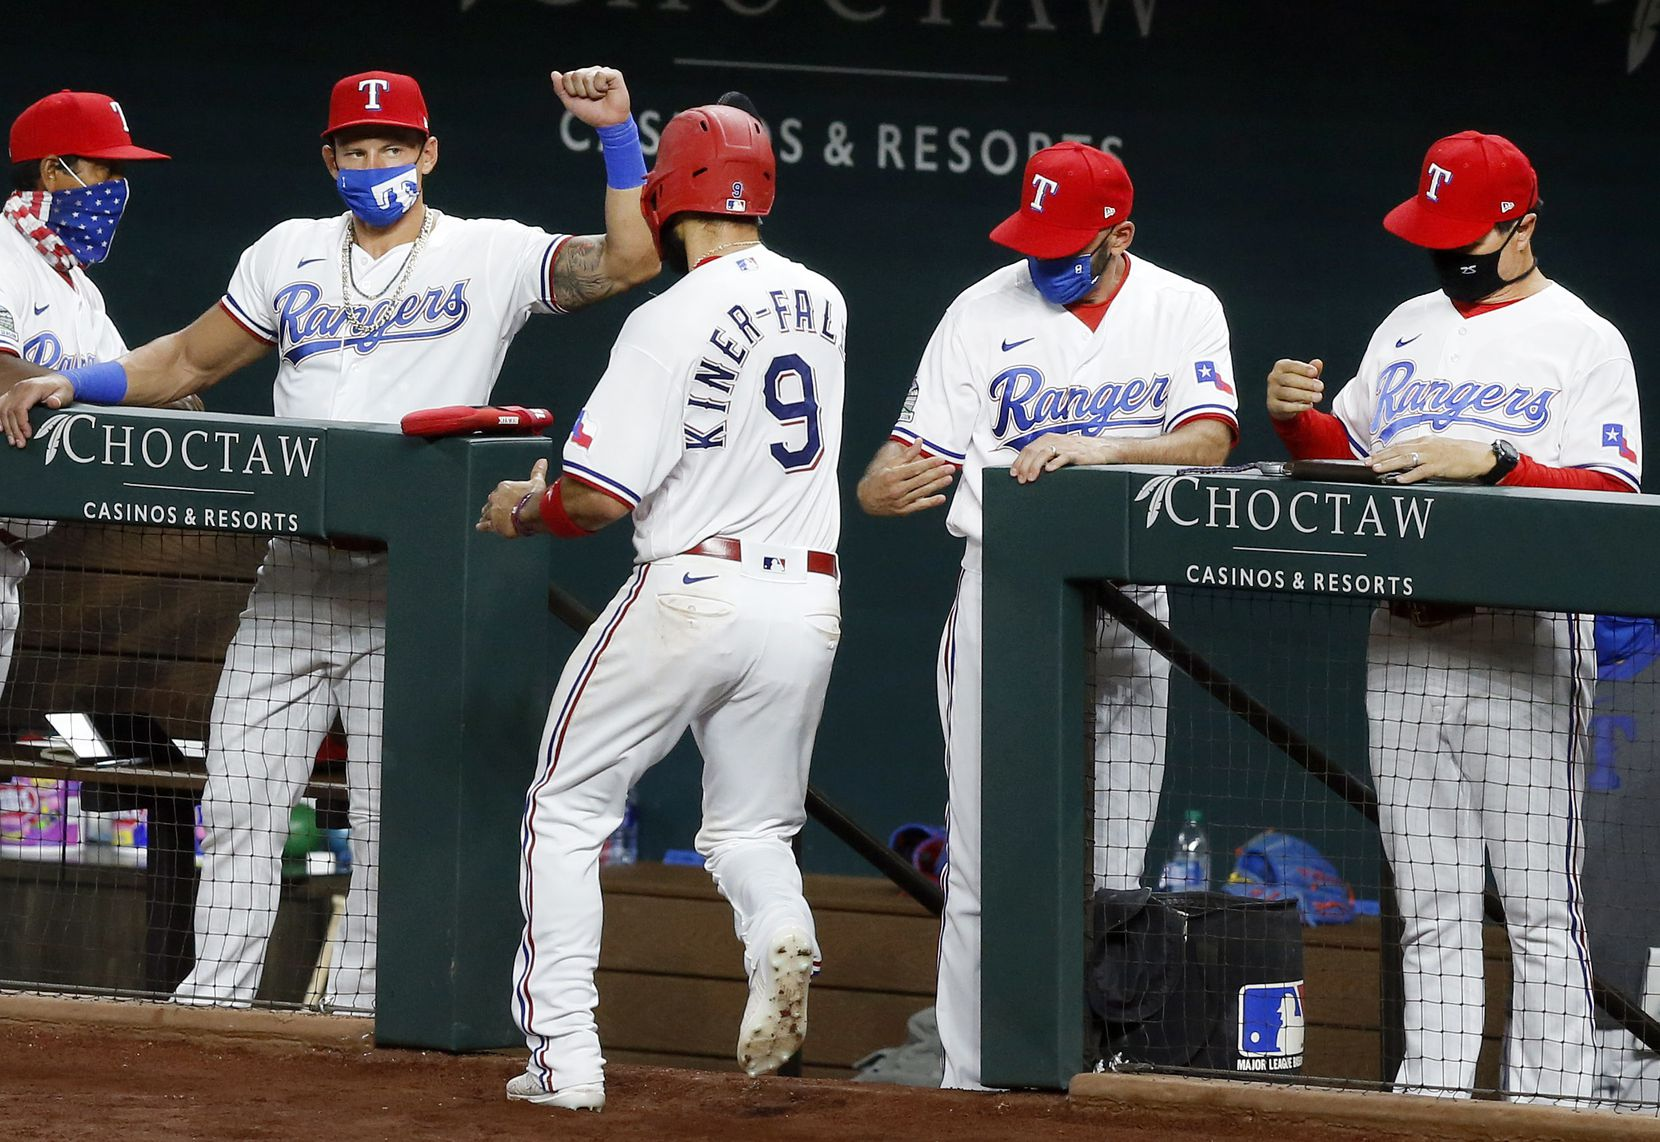 Texas Rangers Isiah Kiner-Falefa (9) is congratulated by the coaching staff and players after he scored on a Nick Solak single in the third inning against the Seattle Mariners at Globe Life Field in Arlington, Tuesday, August 11, 2020. (Tom Fox/The Dallas Morning News)